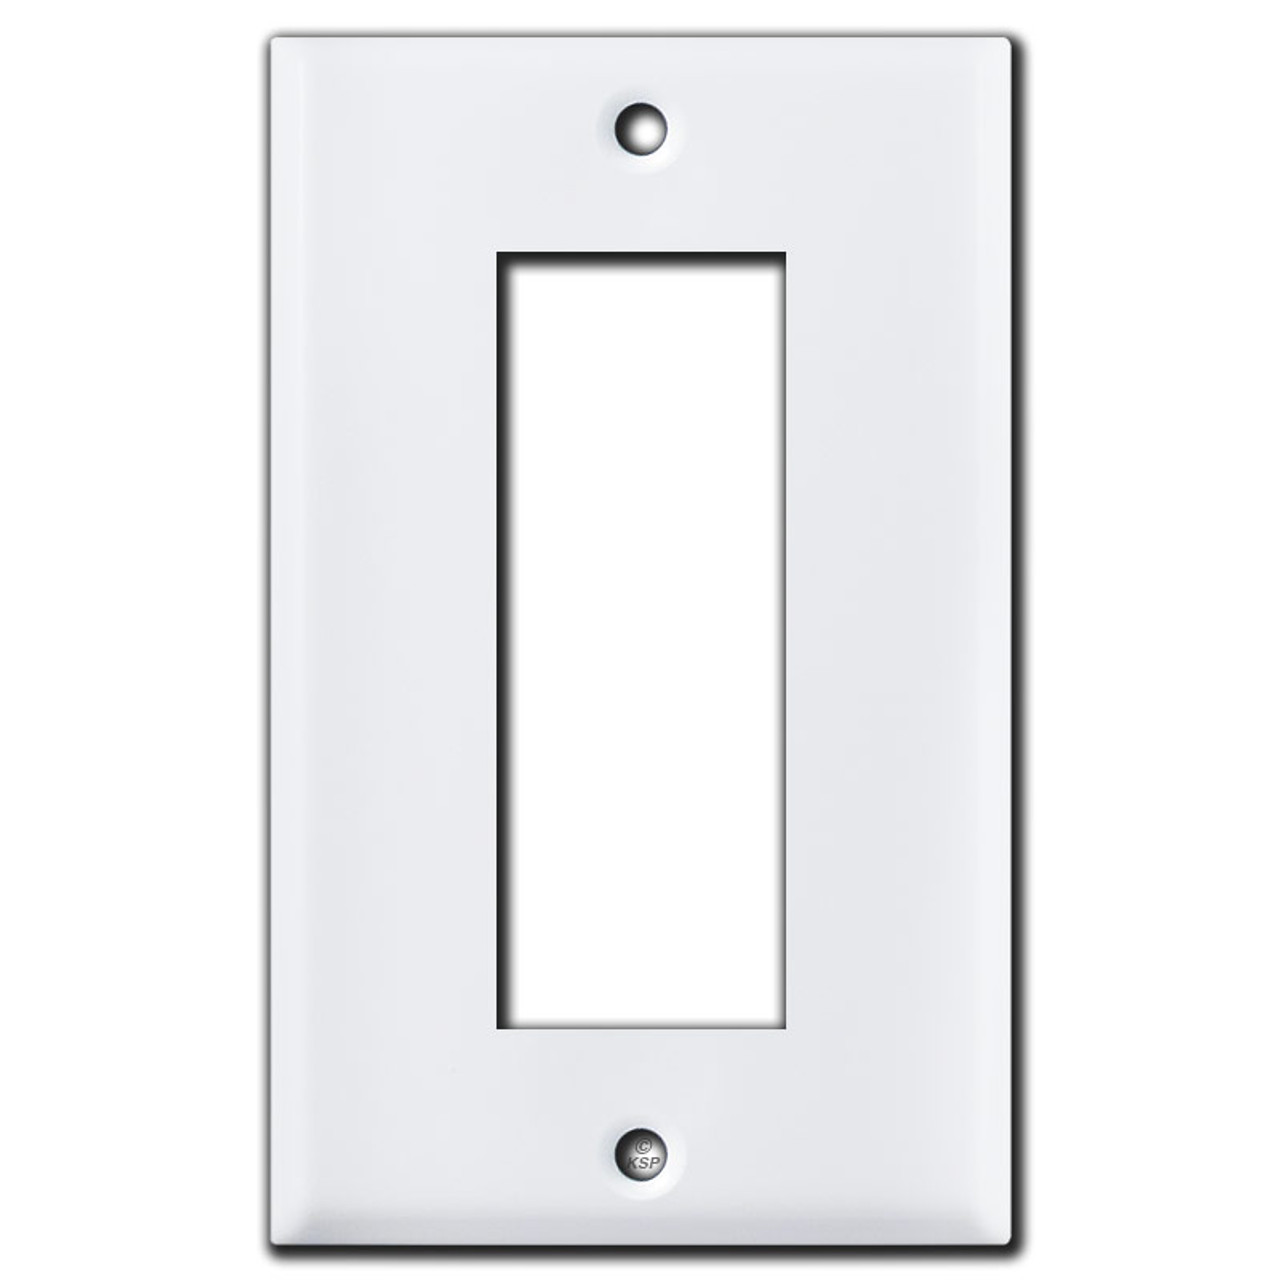 Old Style Sierra Electric Biplex Triplex Outlet Cover Plates White